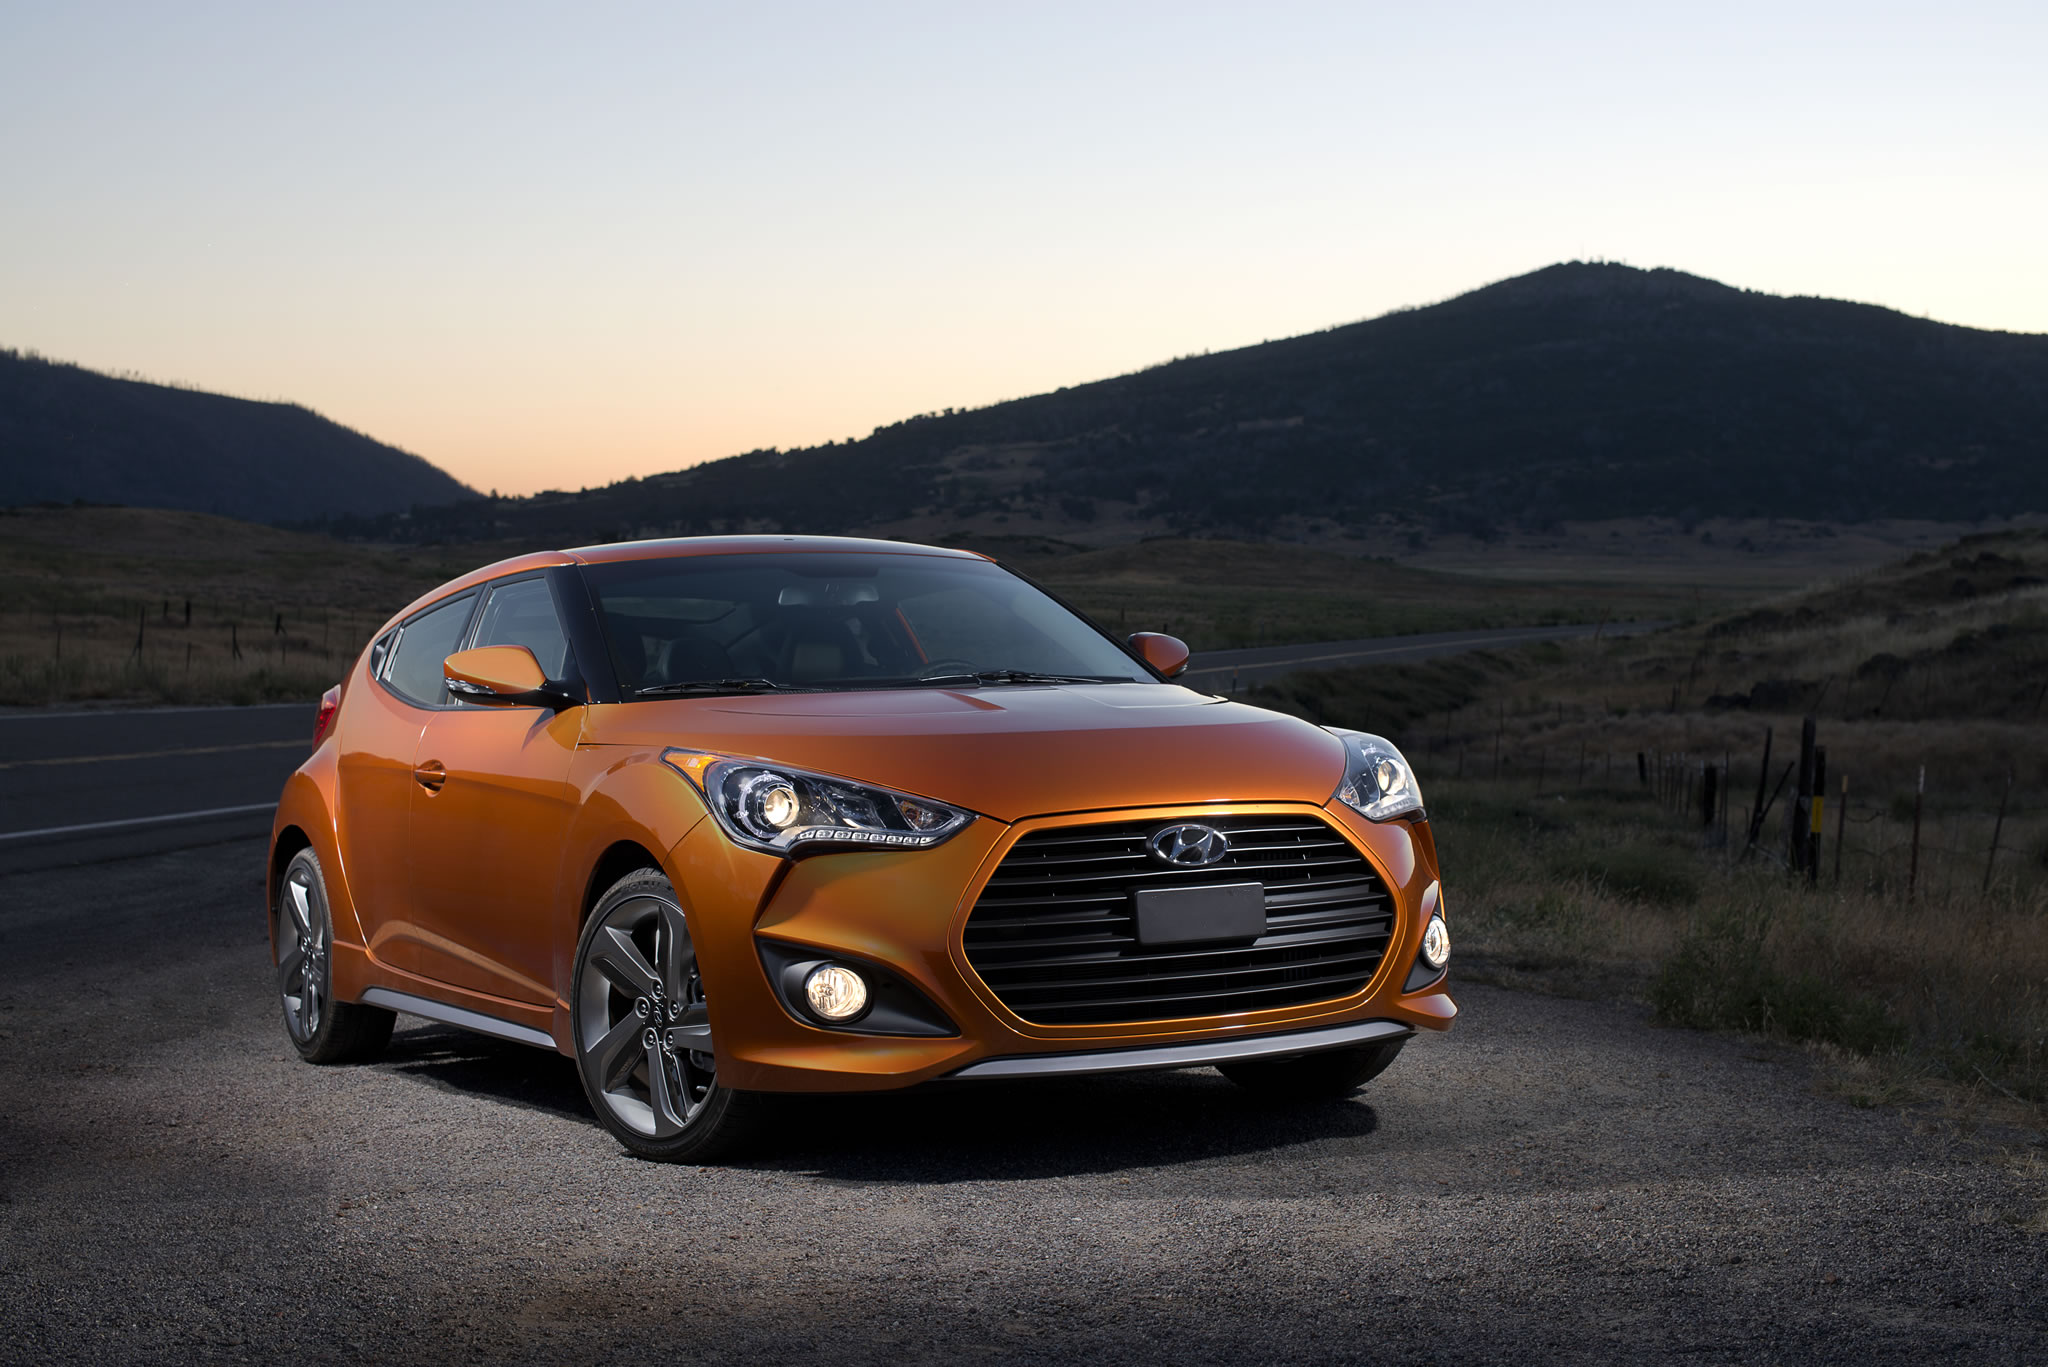 2014 hyundai veloster turbo front photo vitamin c color. Black Bedroom Furniture Sets. Home Design Ideas